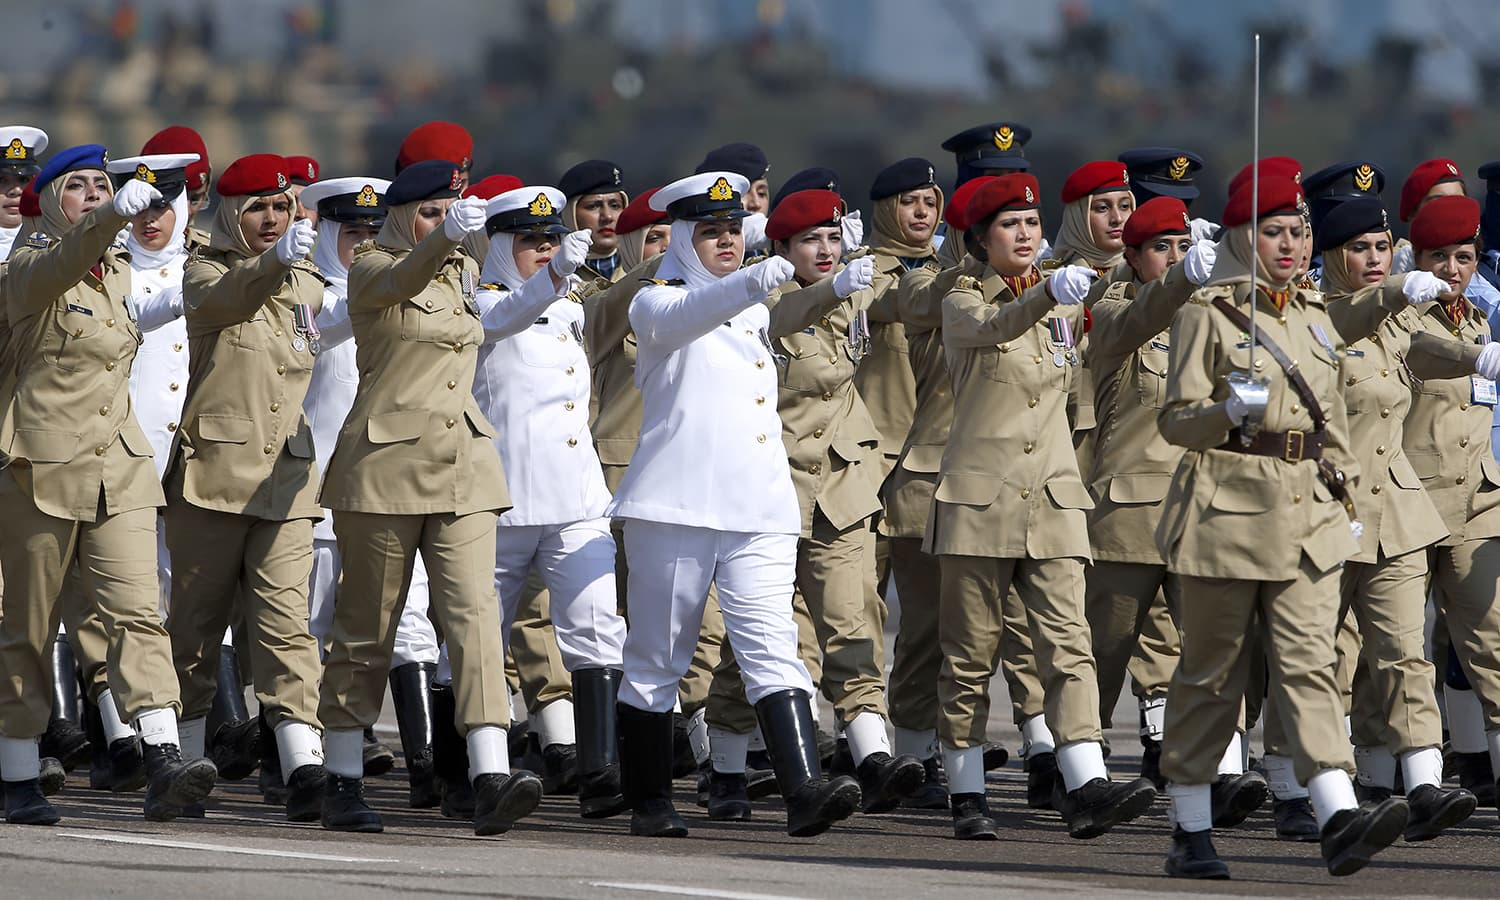 Female soldiers of Pakistan Army march during the Pakistan Day military parade in Islamabad. ─AP